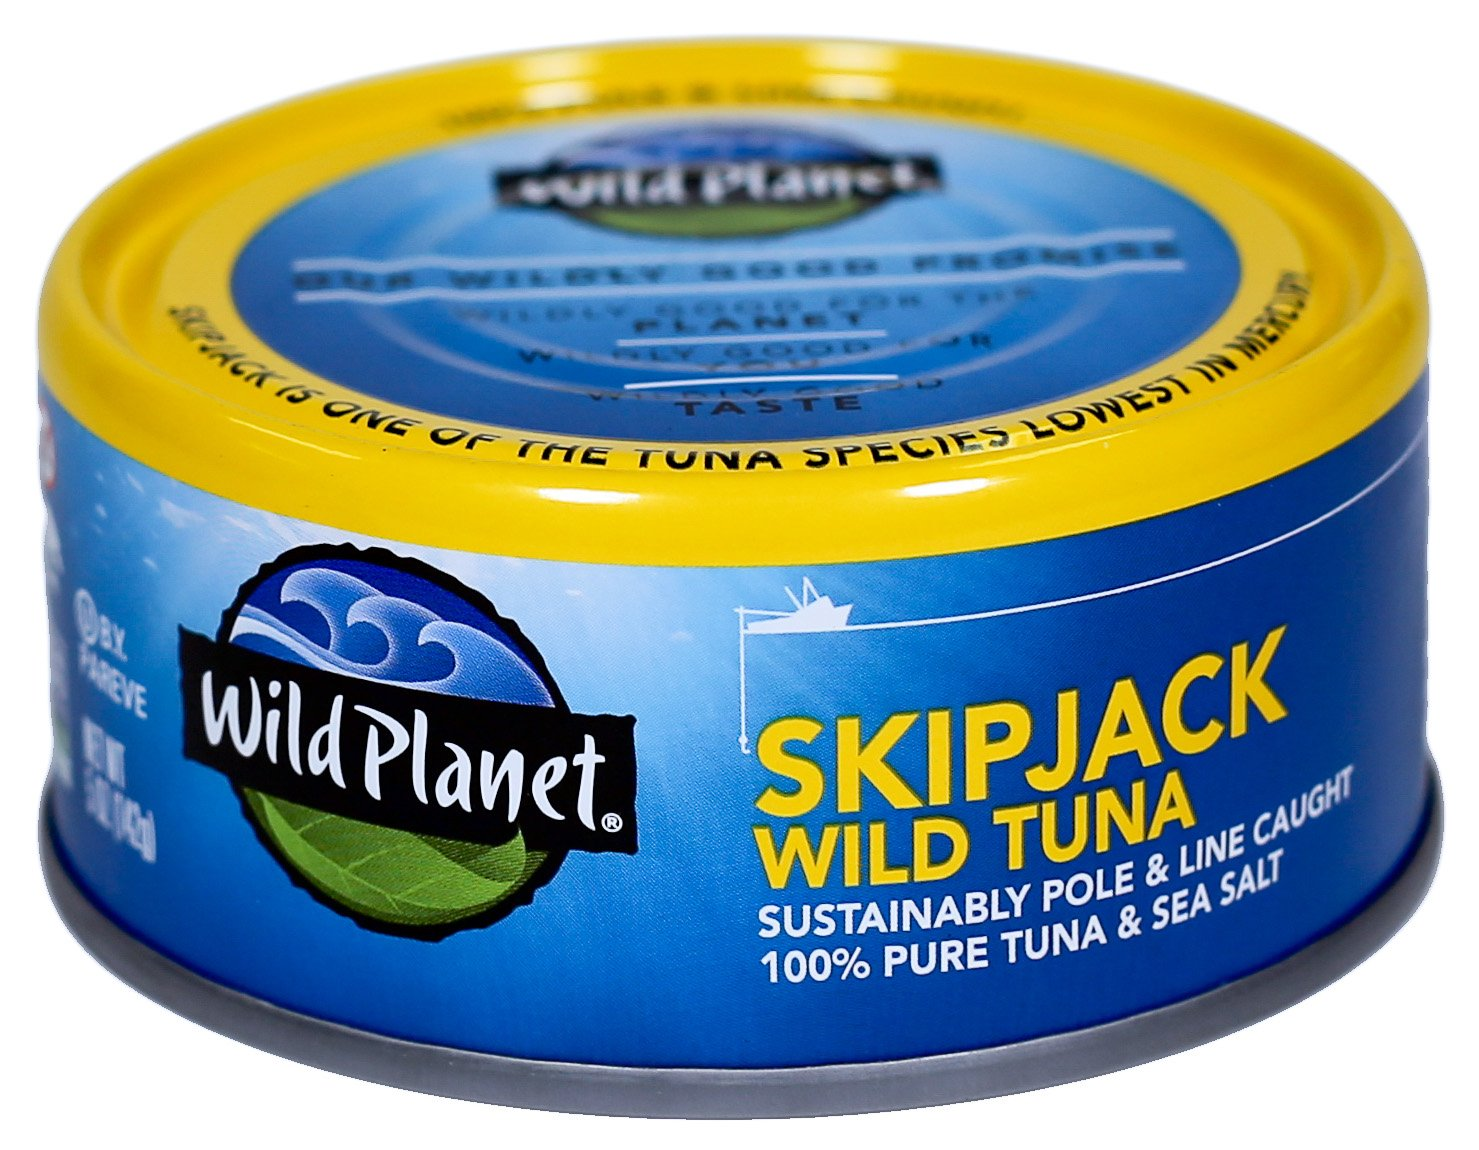 Wild Planet, Wild Skipjack Light Tuna, 5-Ounce. Cans (Pack of 12)